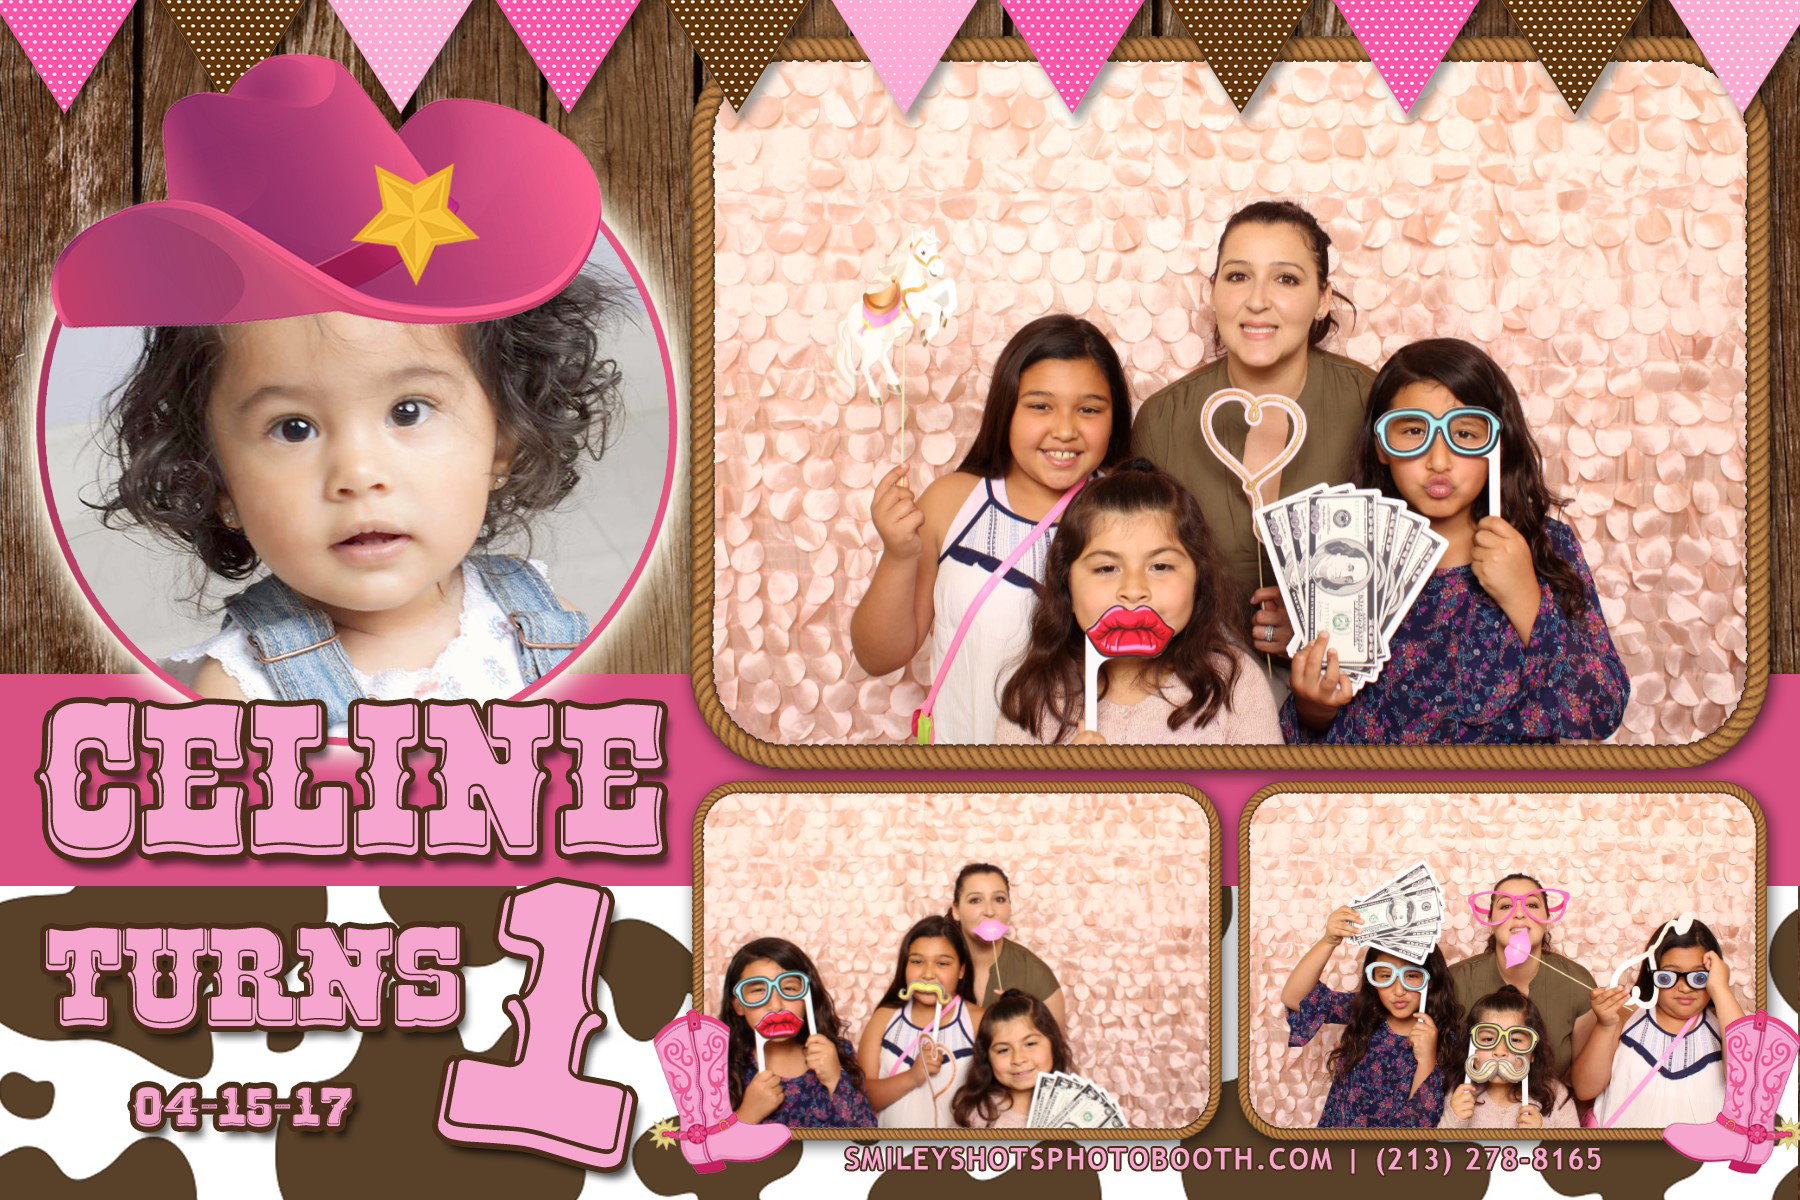 Celine turns 1 Smiley Shots Photo Booth Photobooth (9).png